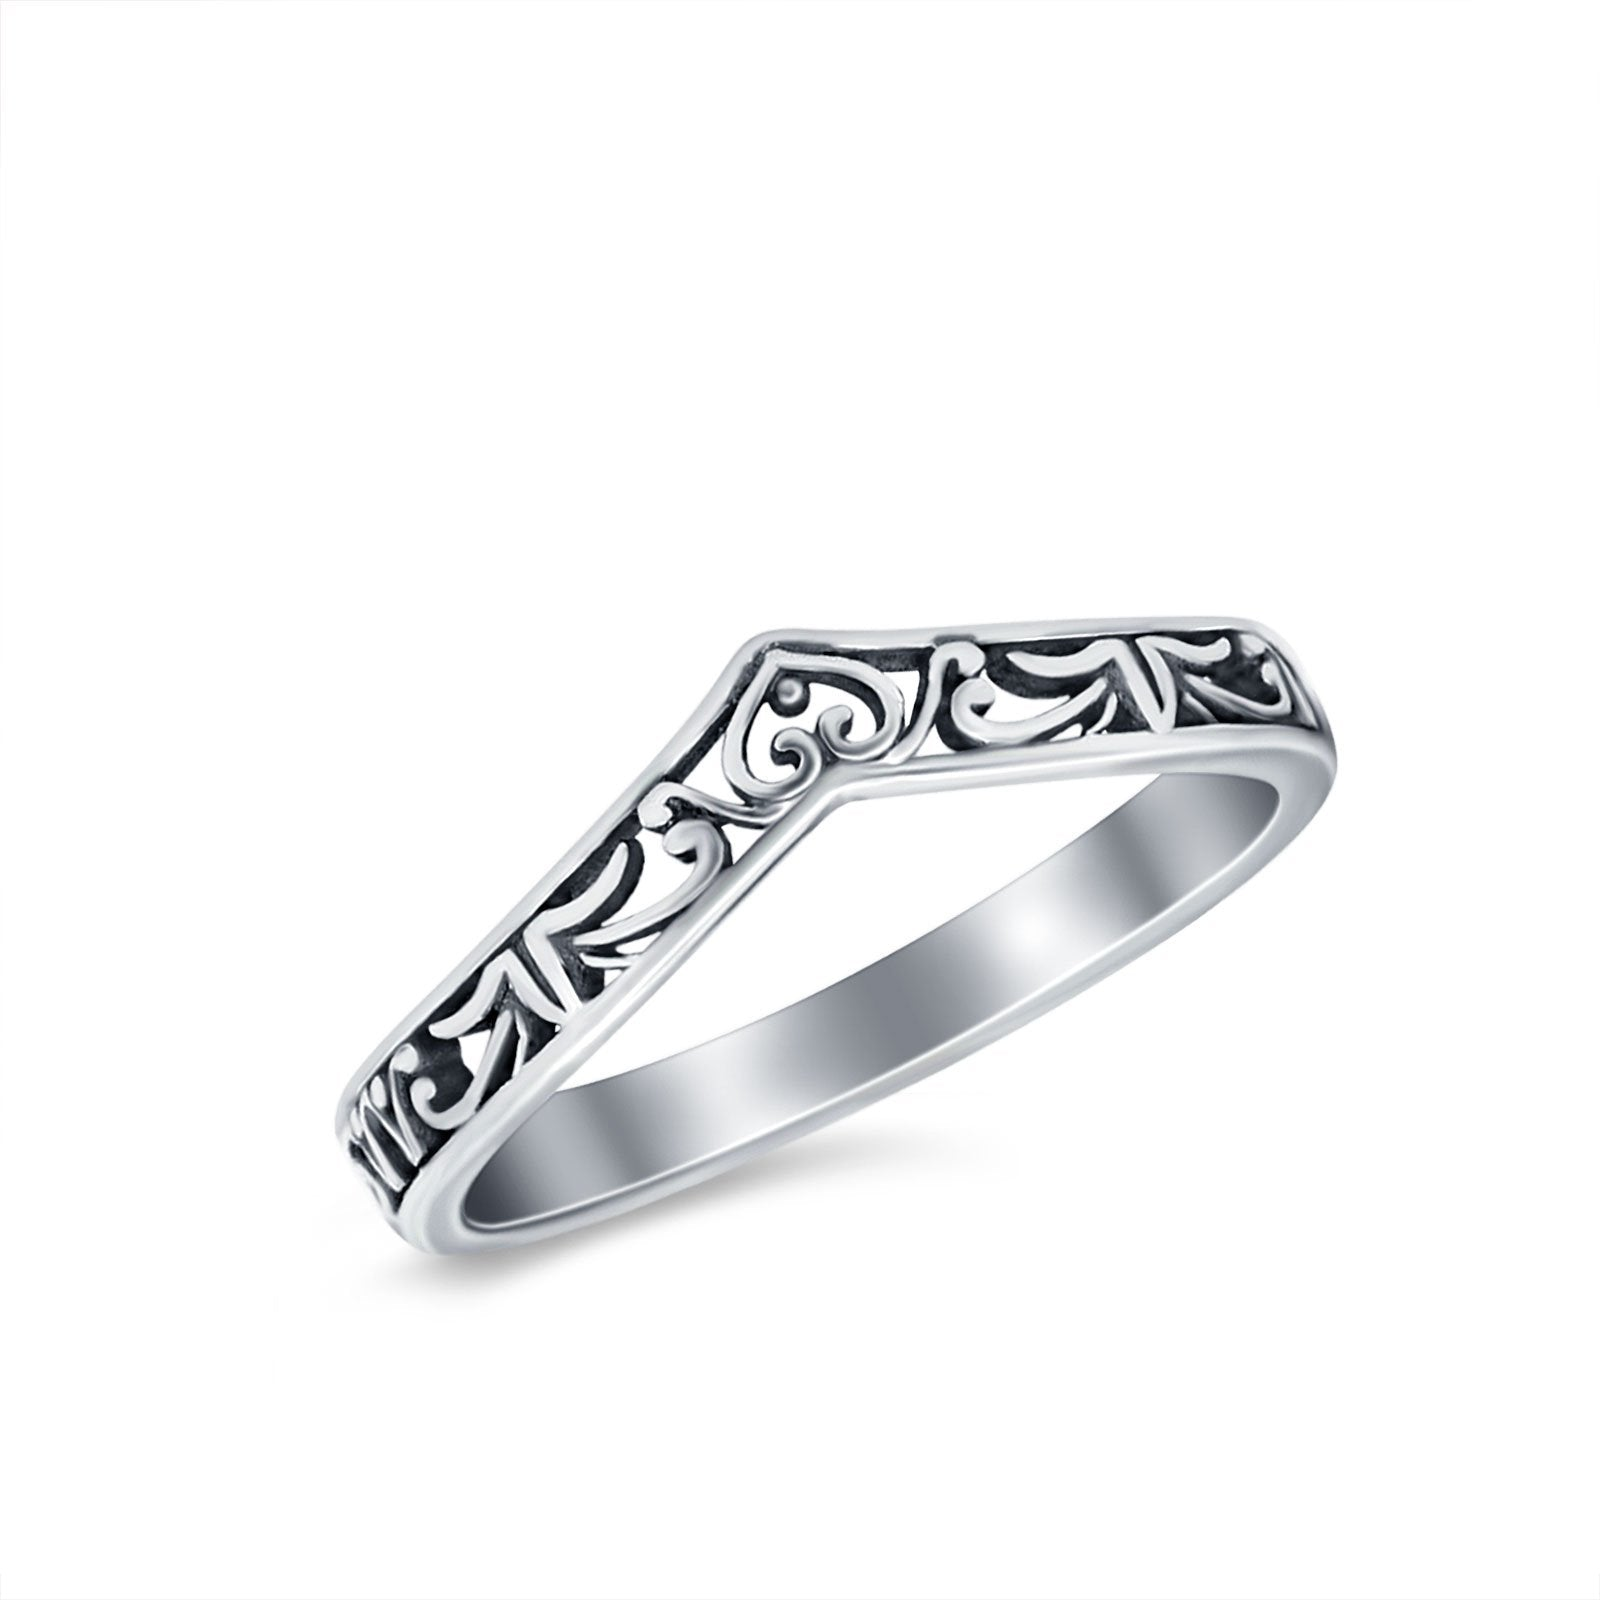 Heart Filigree Midi Thumb Ring V Band Chevron Plain Solid 925 Sterling Silver